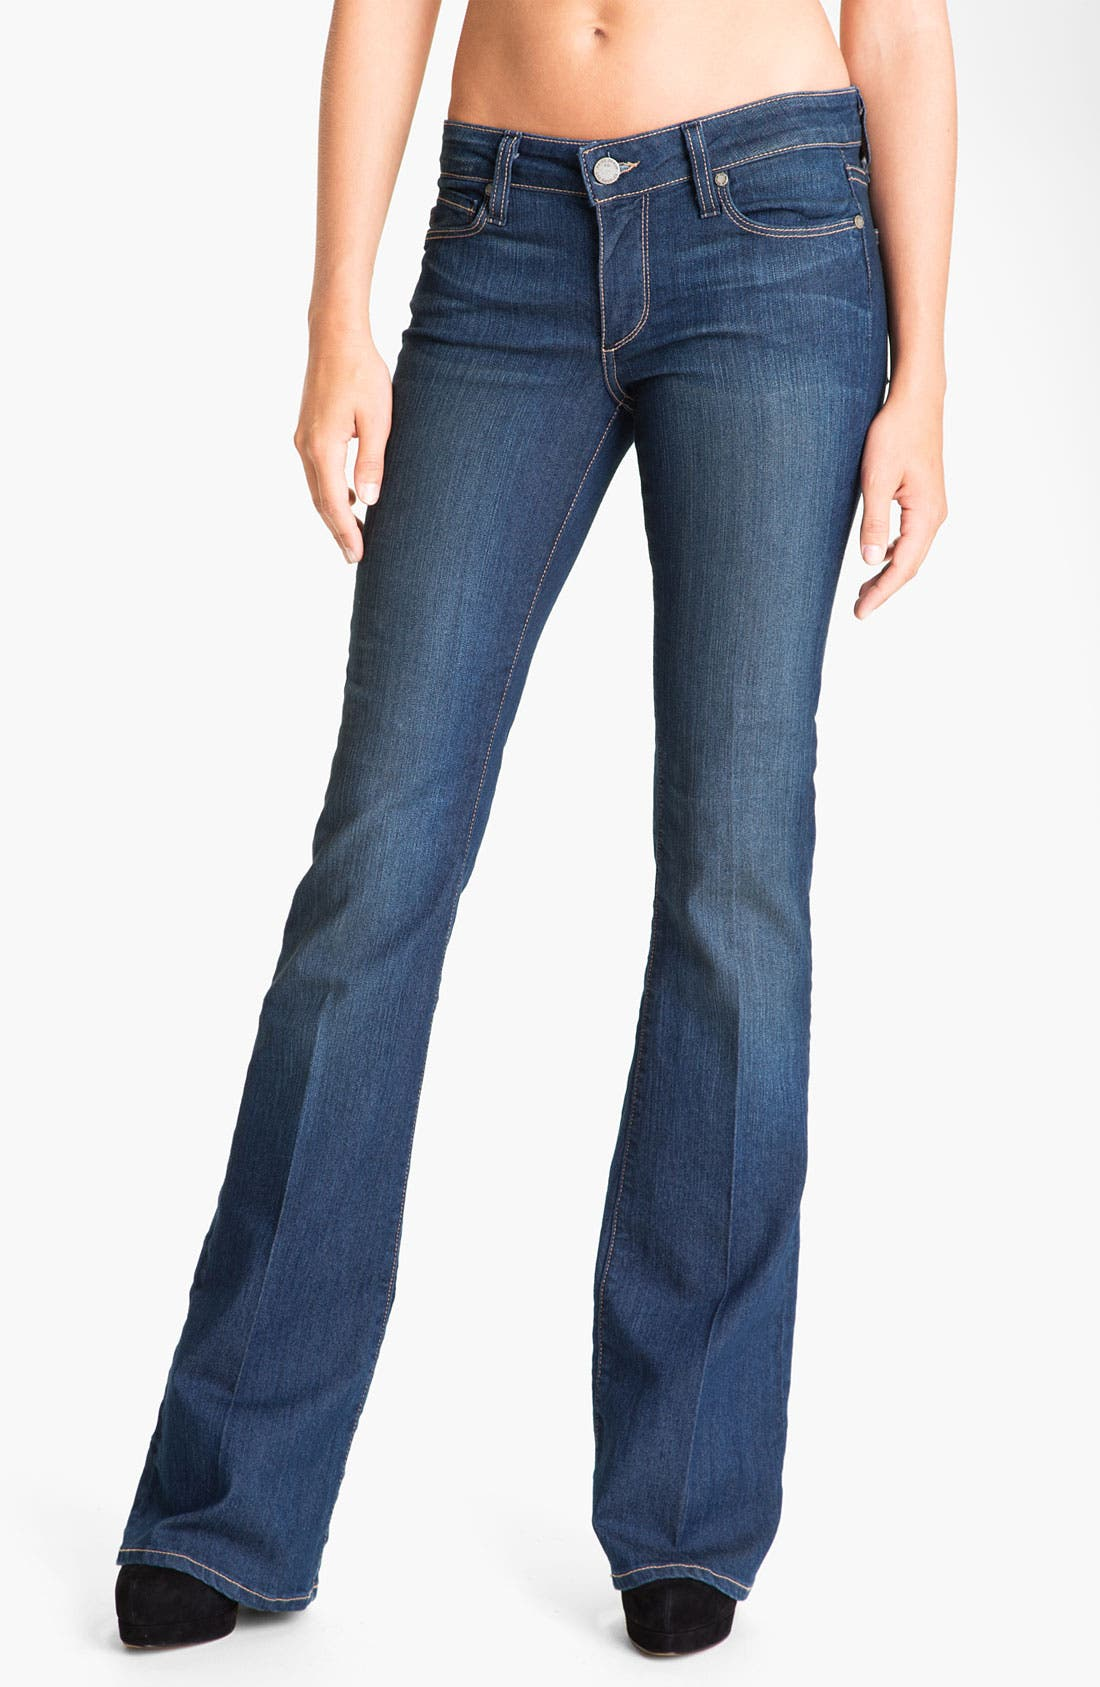 Alternate Image 1 Selected - Paige Denim 'Skyline' Bootcut Jeans (Finley)